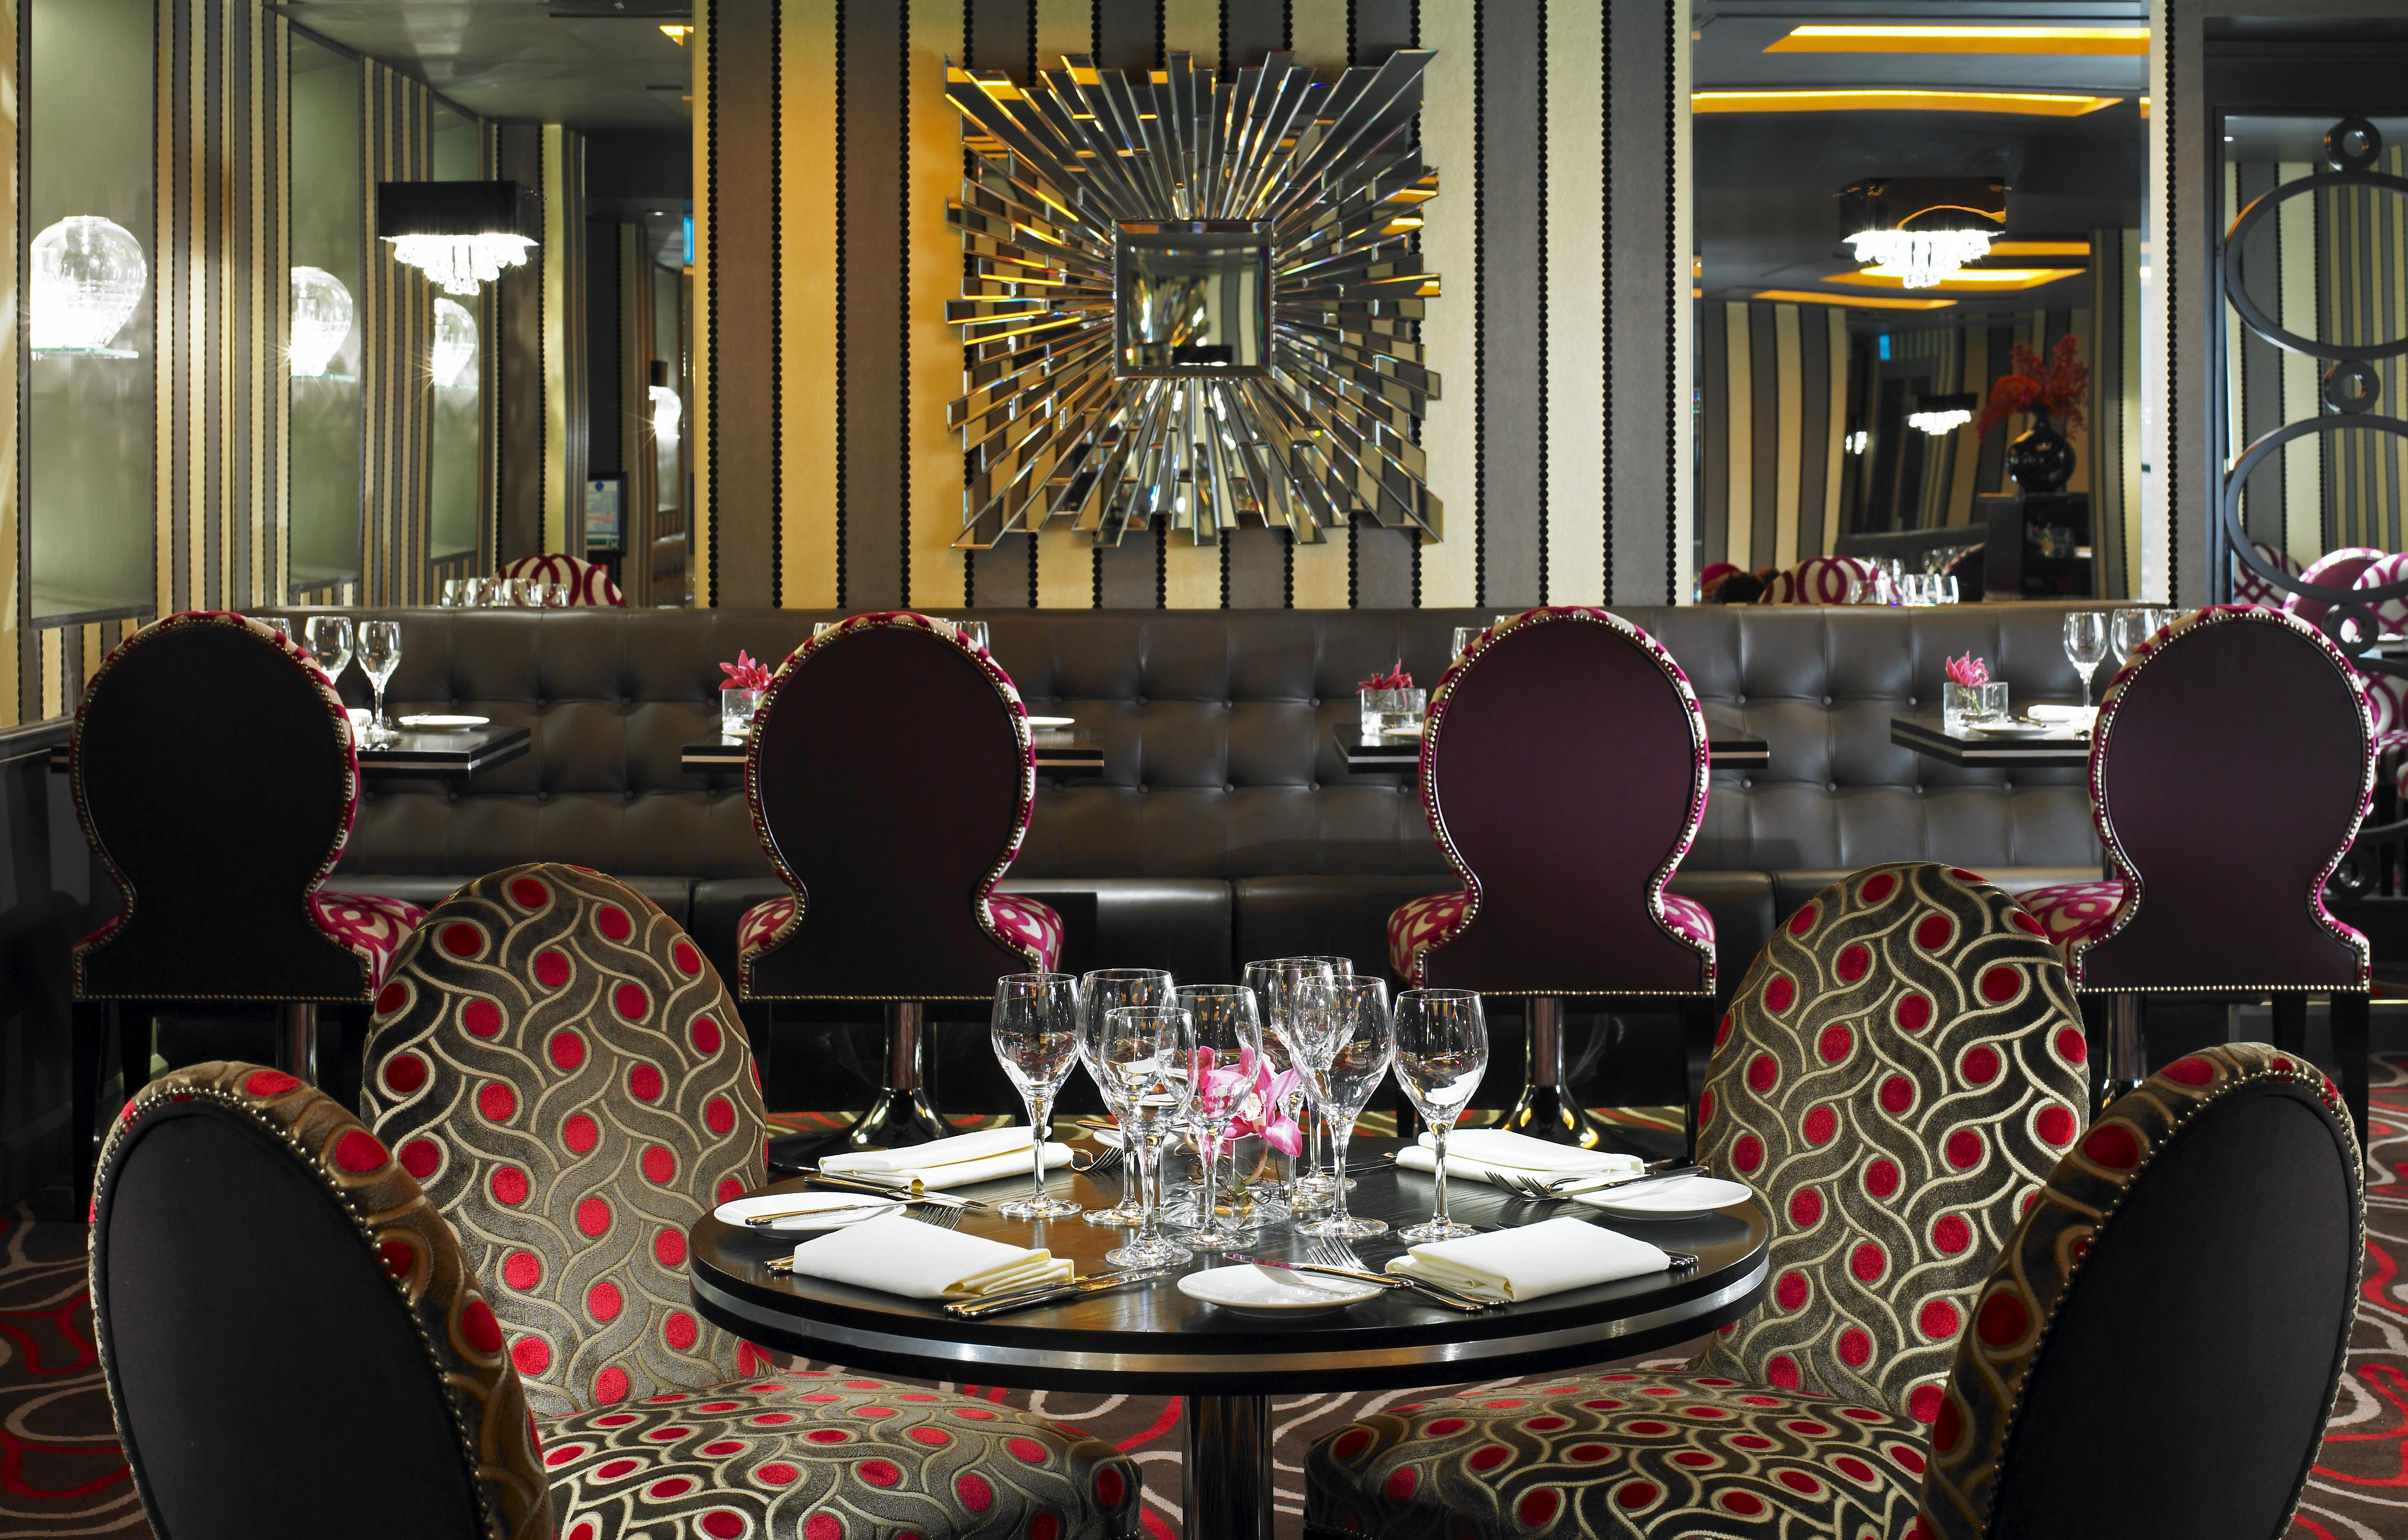 Flemings Grill at Flemings Mayfair Hotel - London